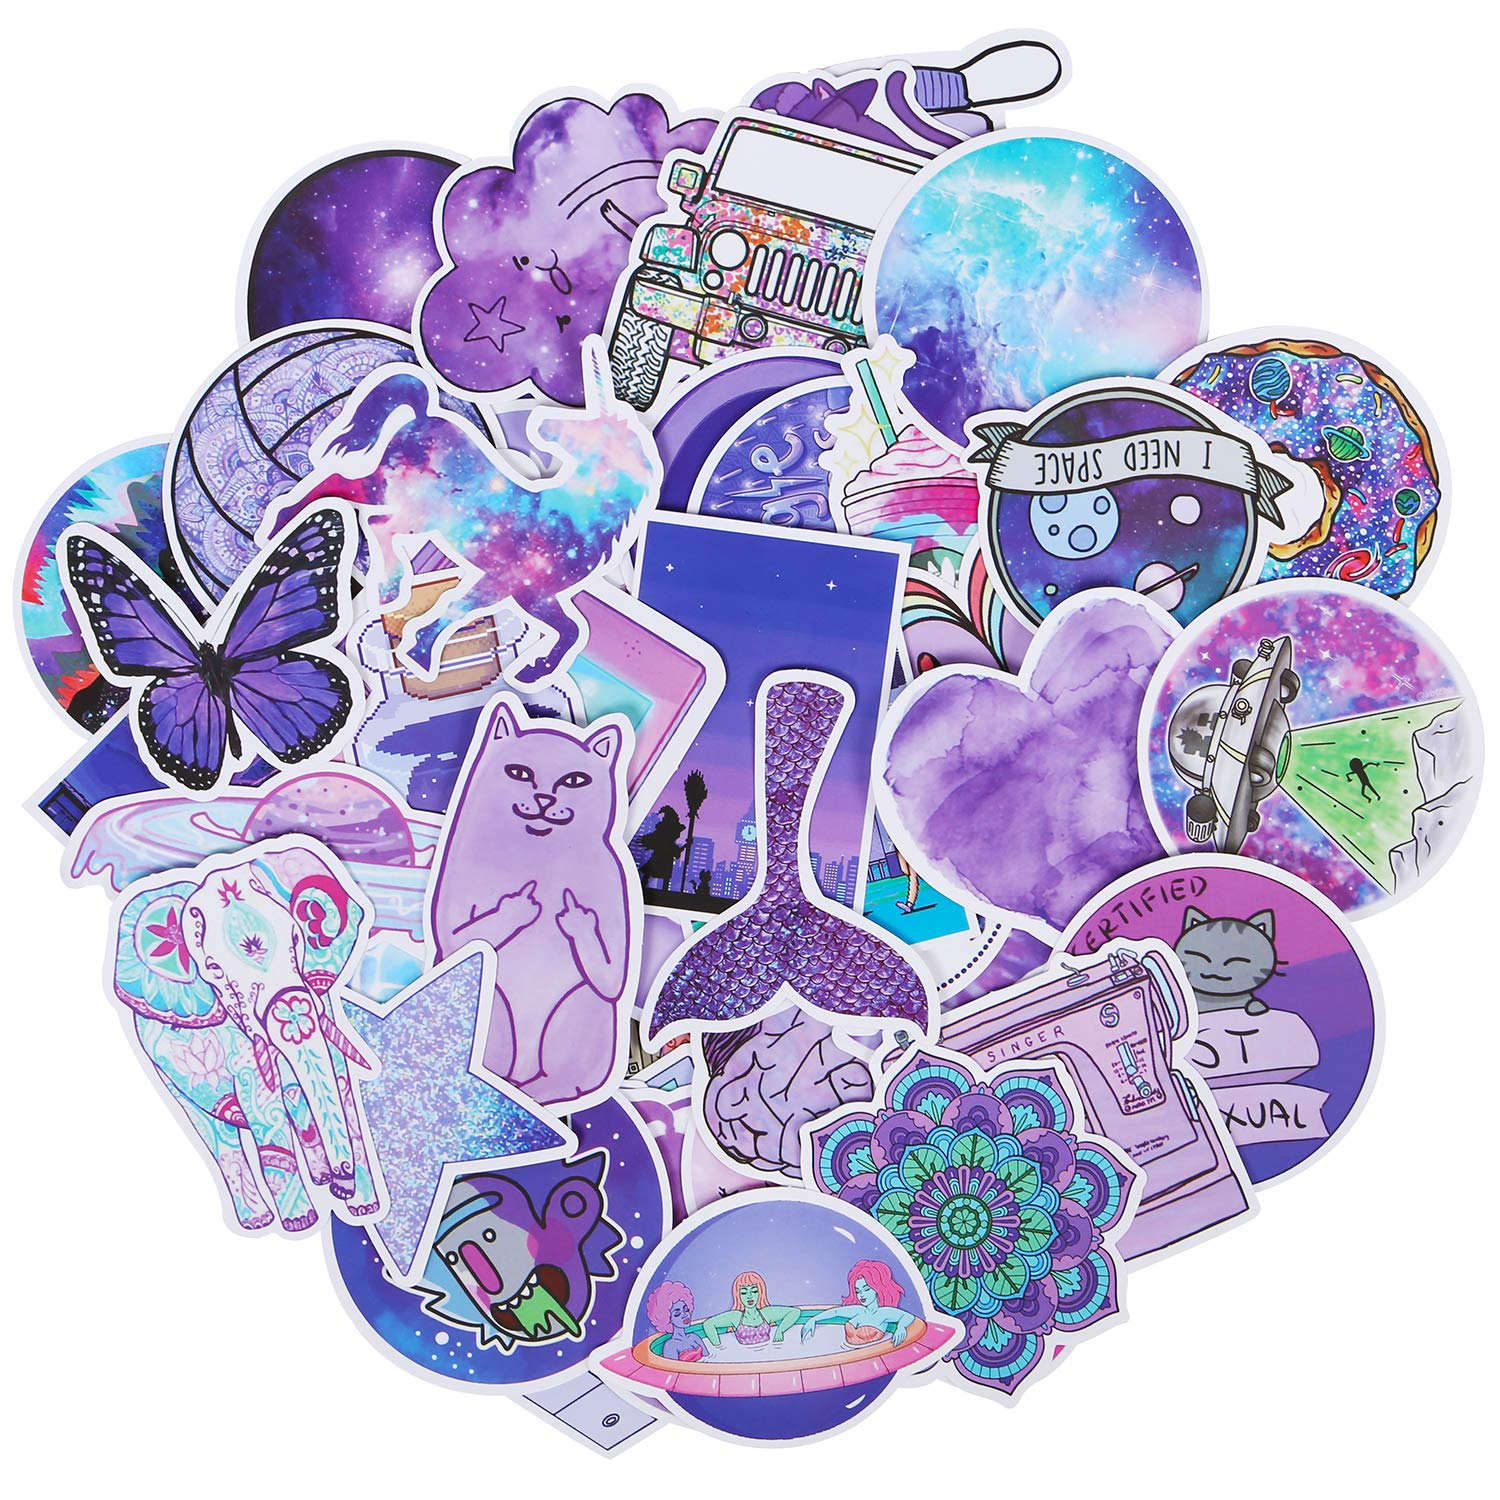 50 Pack Trendy VSCO Stickers Waterproof Water Bottle Stickers Laptop Stickers for VSCO Teen Girls Kids Guitar Skateboards Skate Stickers Unique Color Decals Roberly Cute Purple Stickers